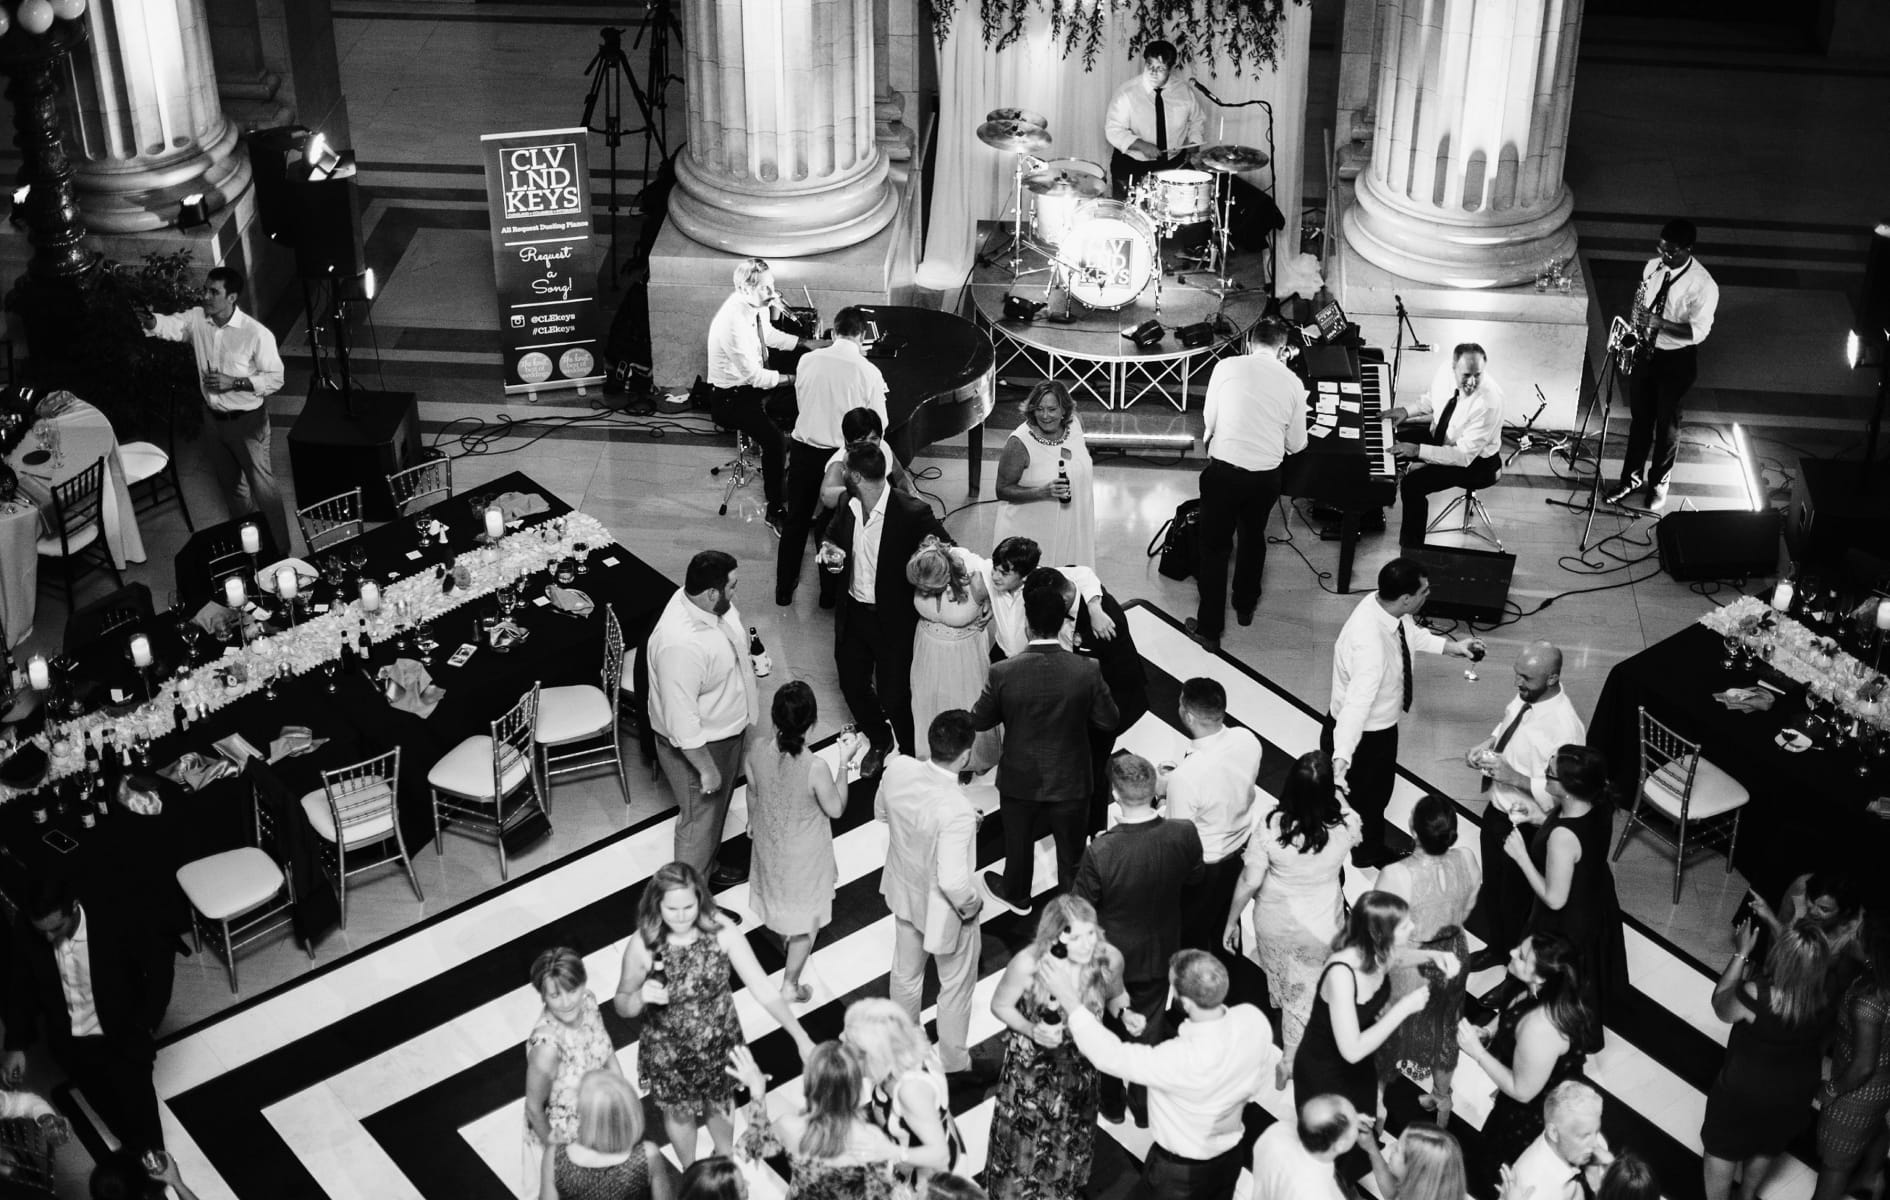 aerial view of the dance floor with multiple people dancing